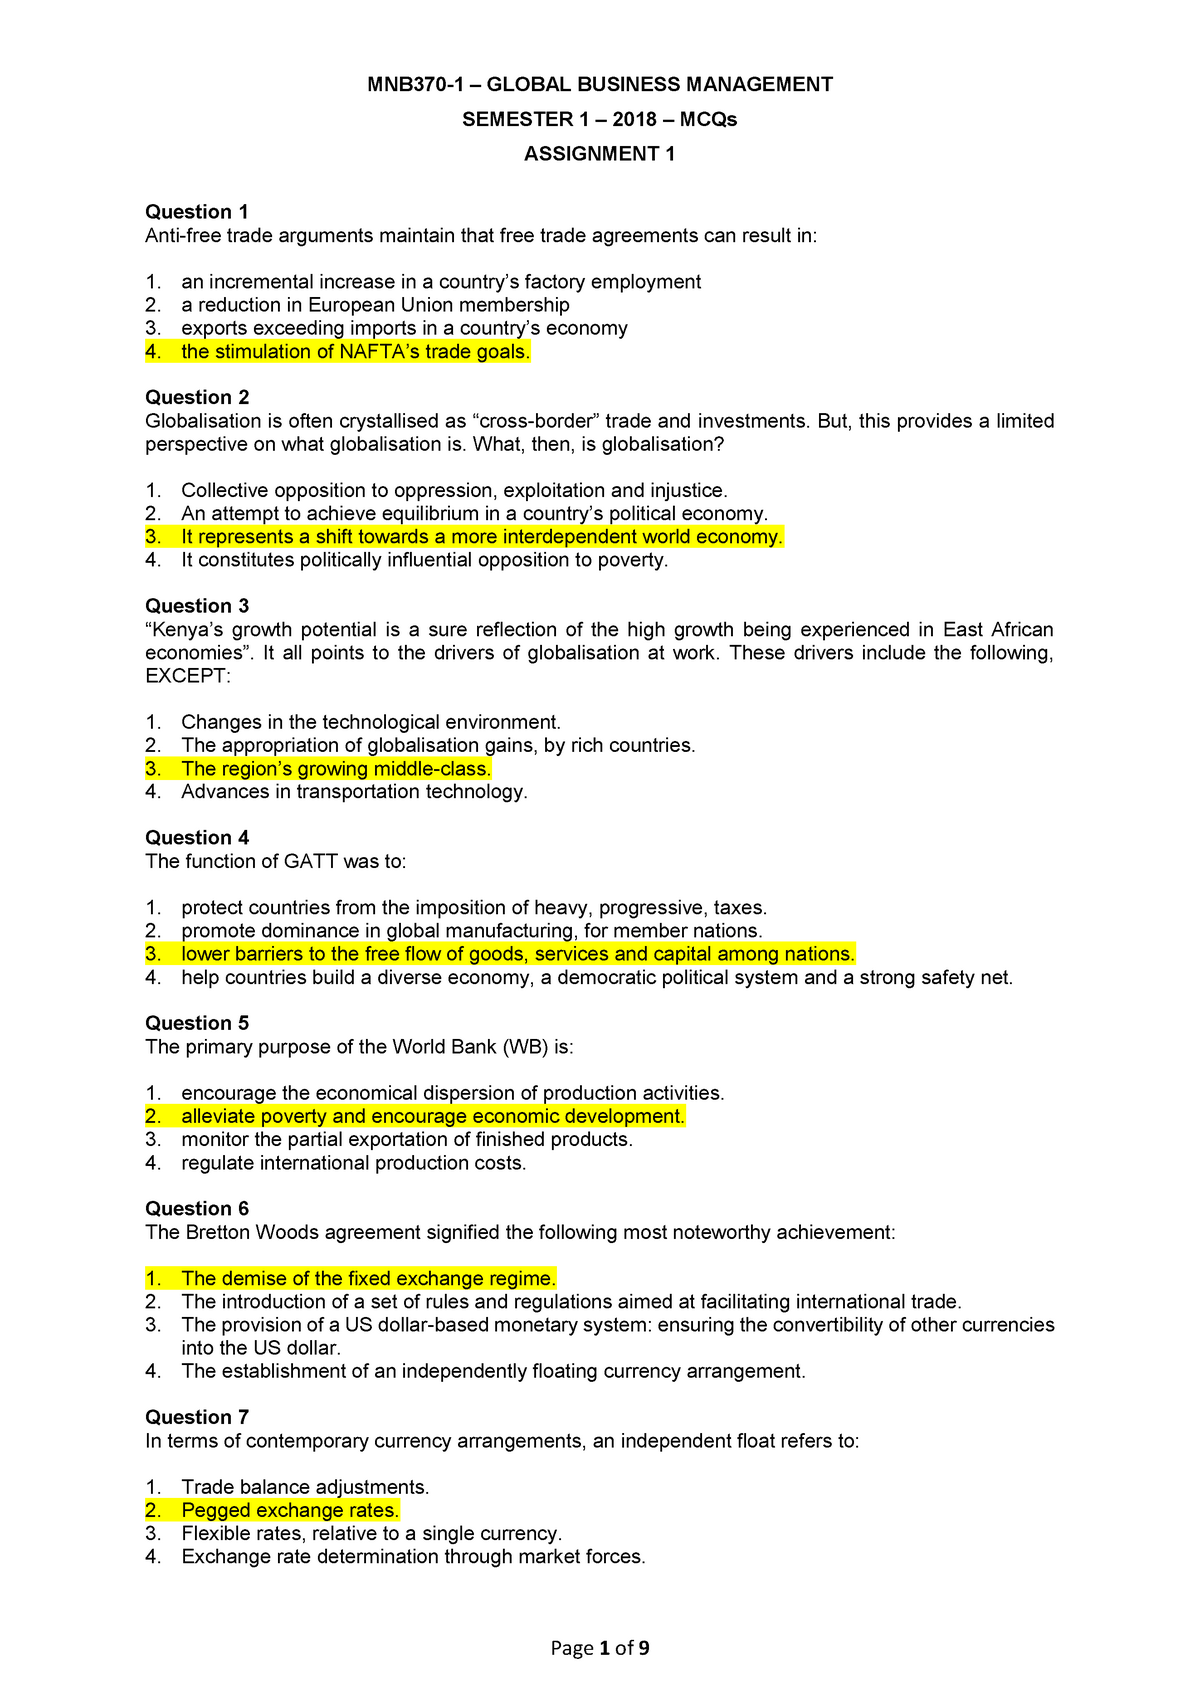 MNB3701 Assignment 1 3 MCQS - MNB3701: Global Business Management IA